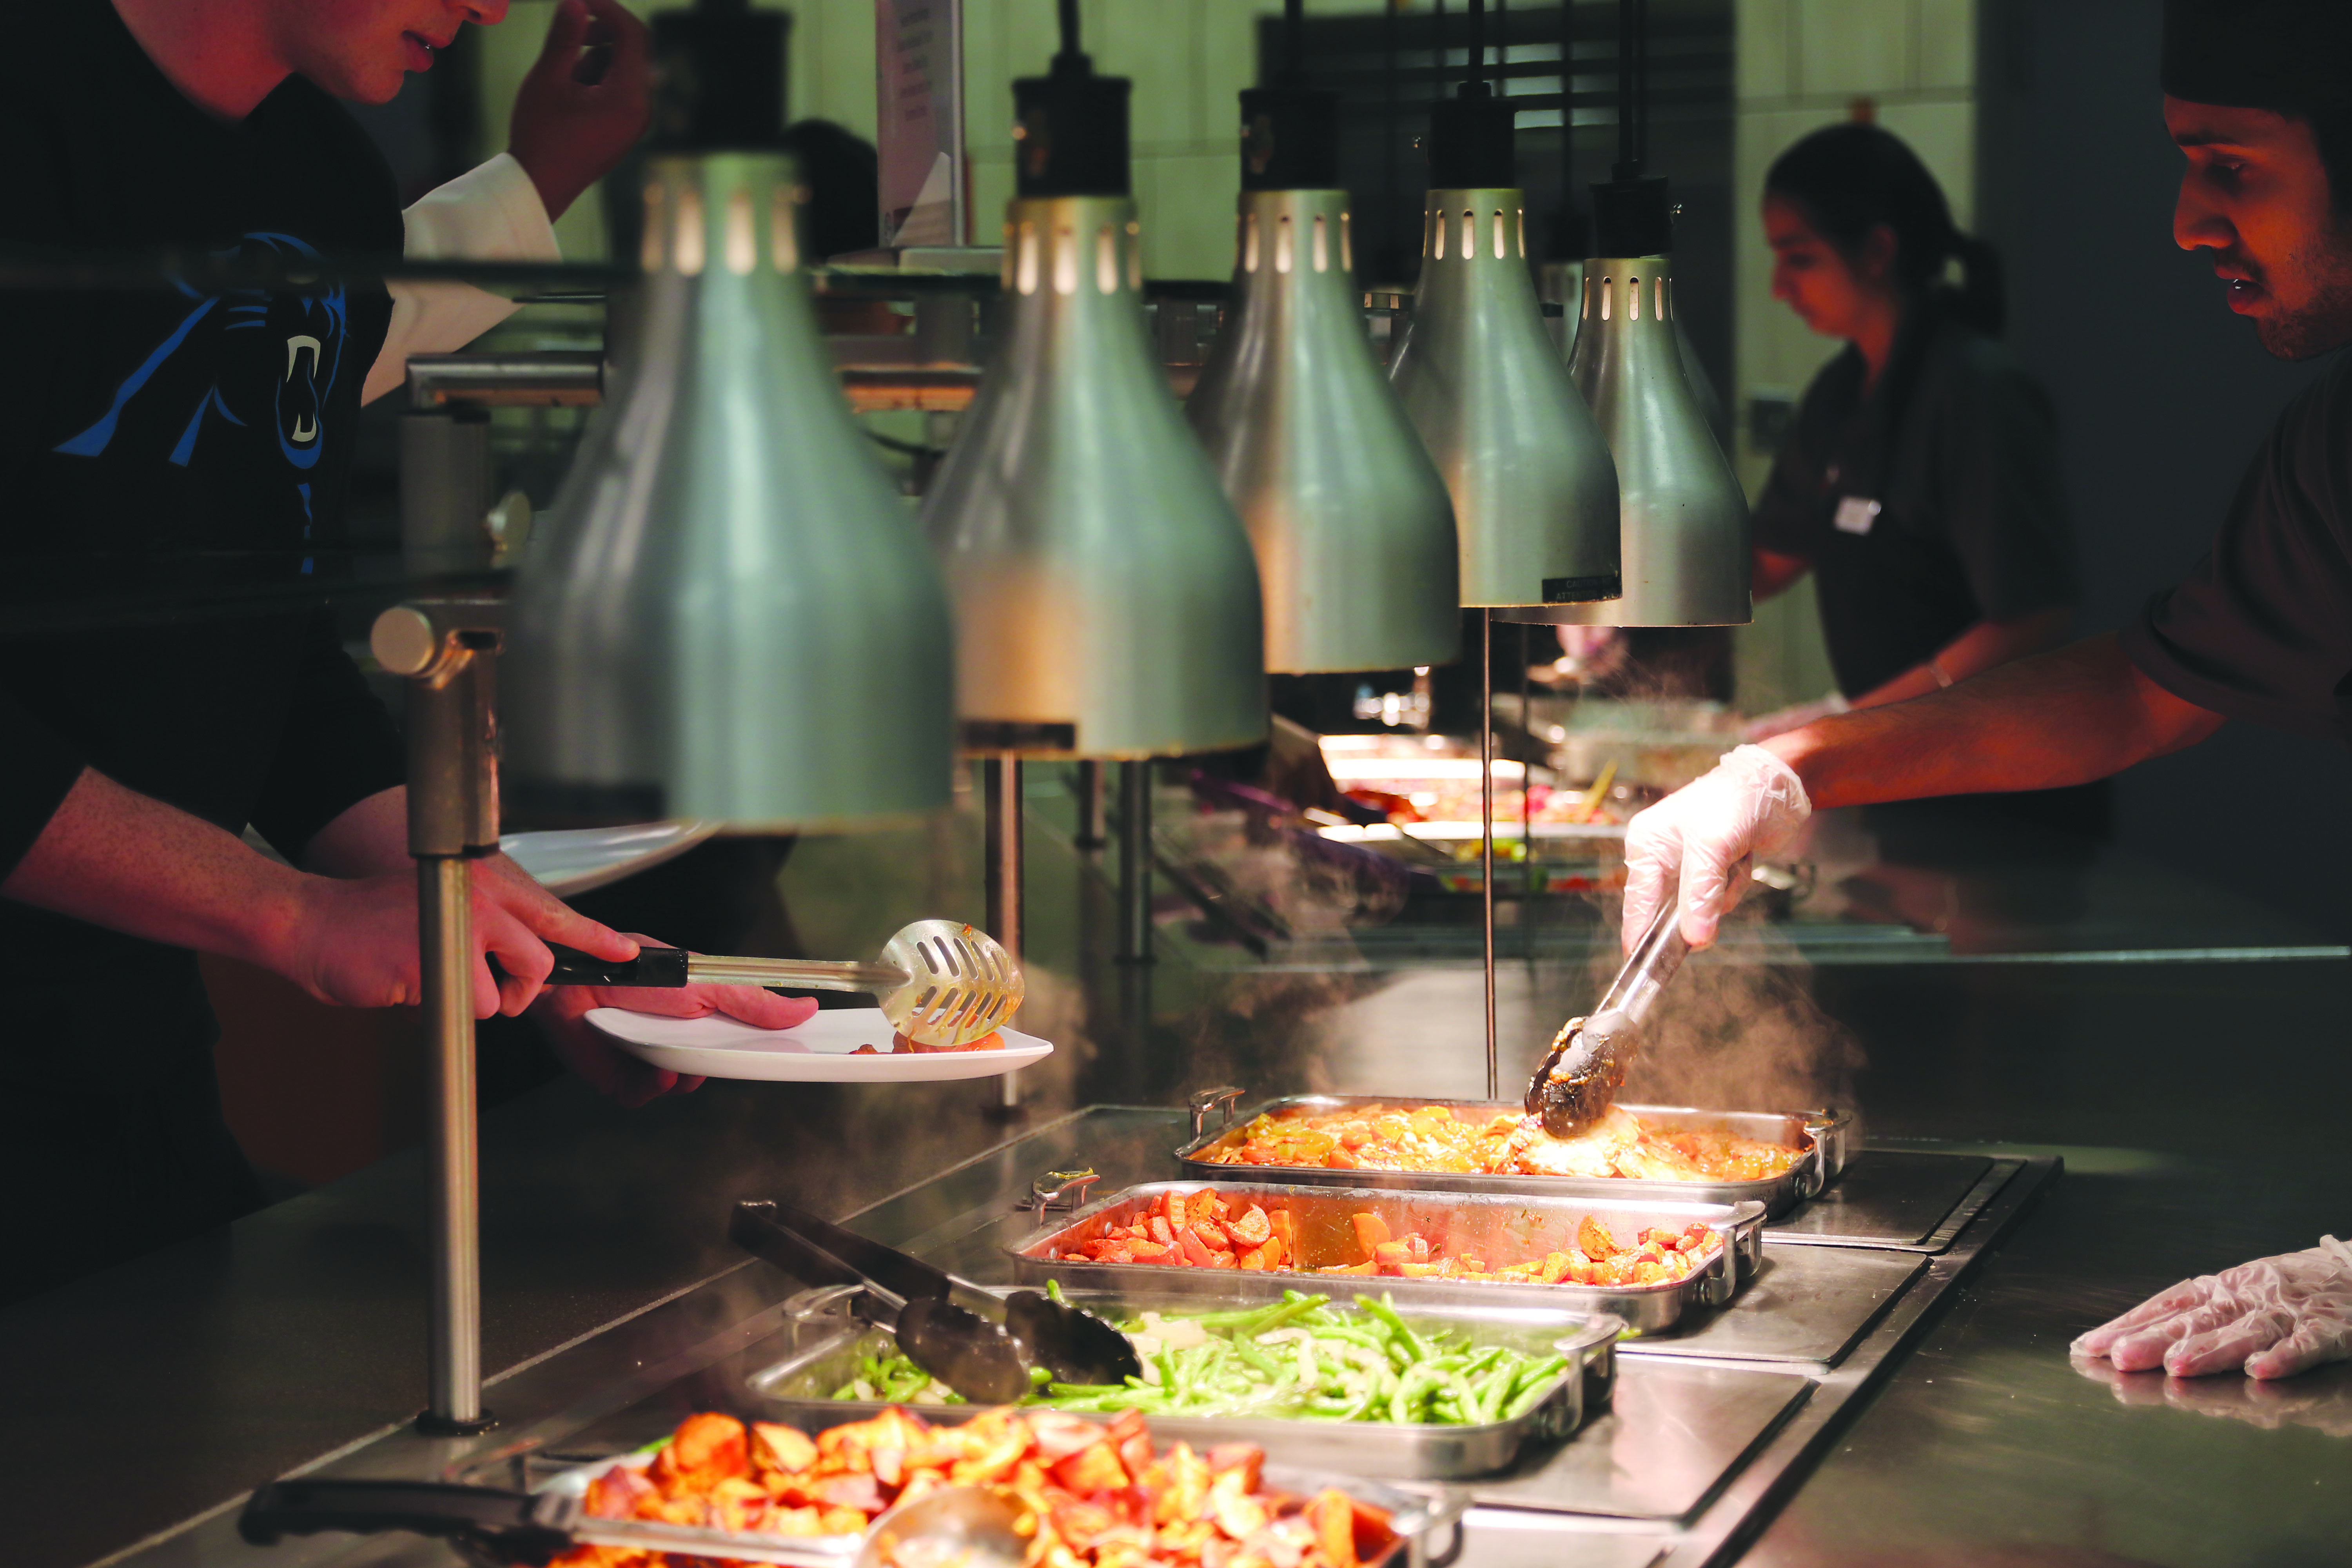 Chartwells workers allege lack of food safety training